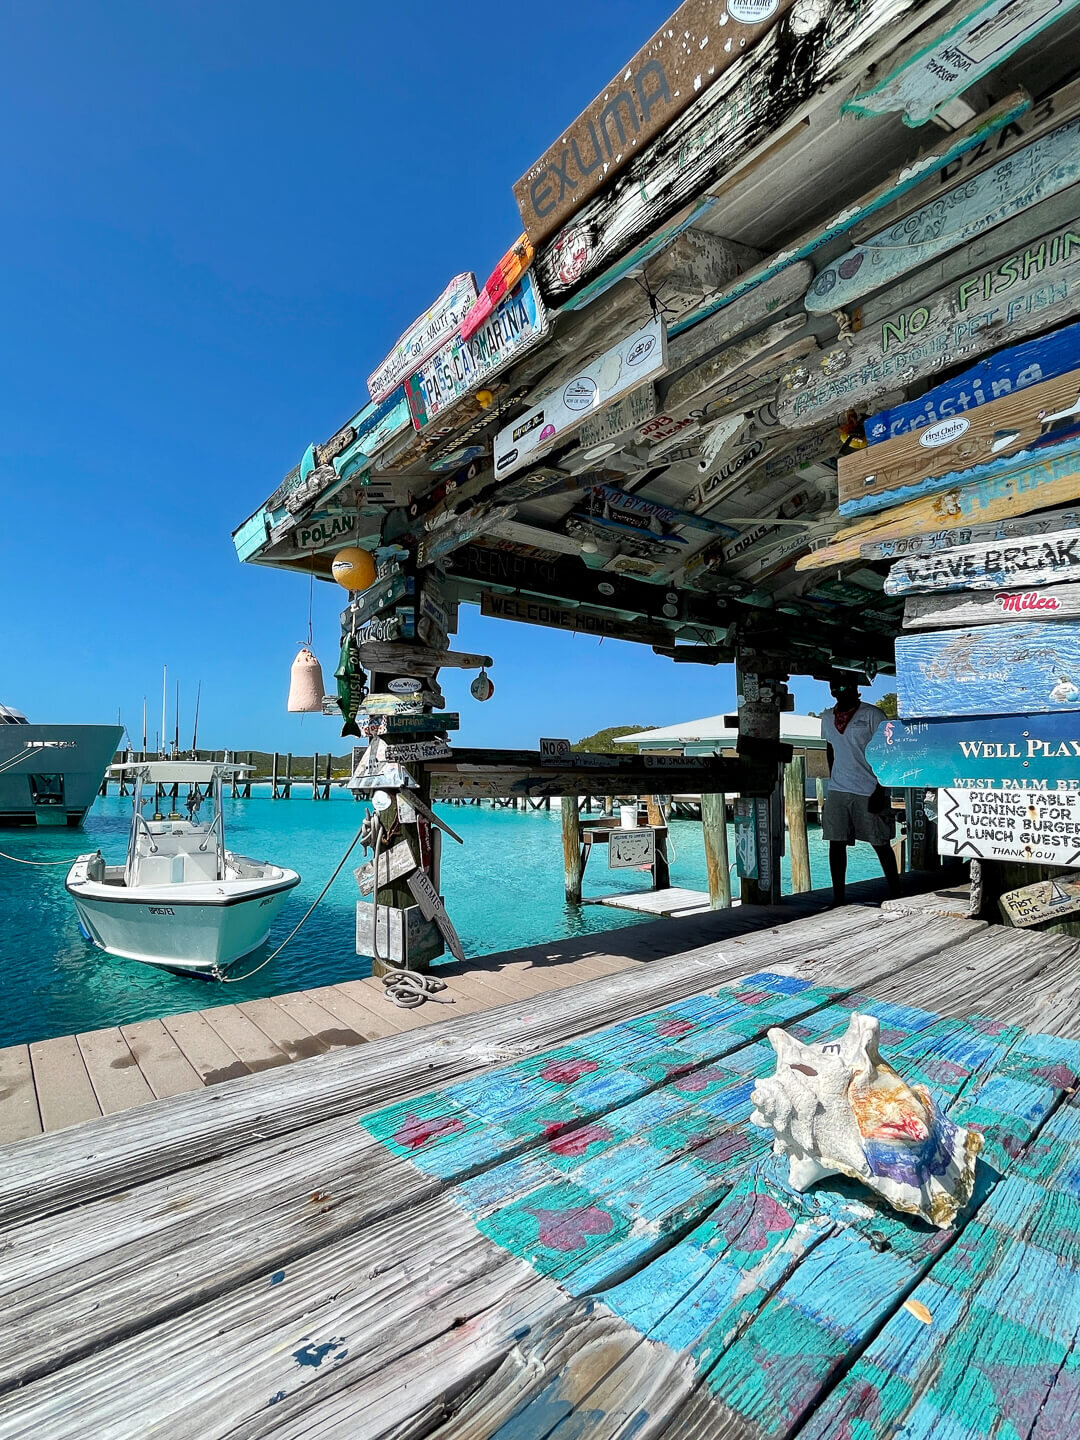 Colorful wood signs left by past travelers give Compass Cay its quirky character.